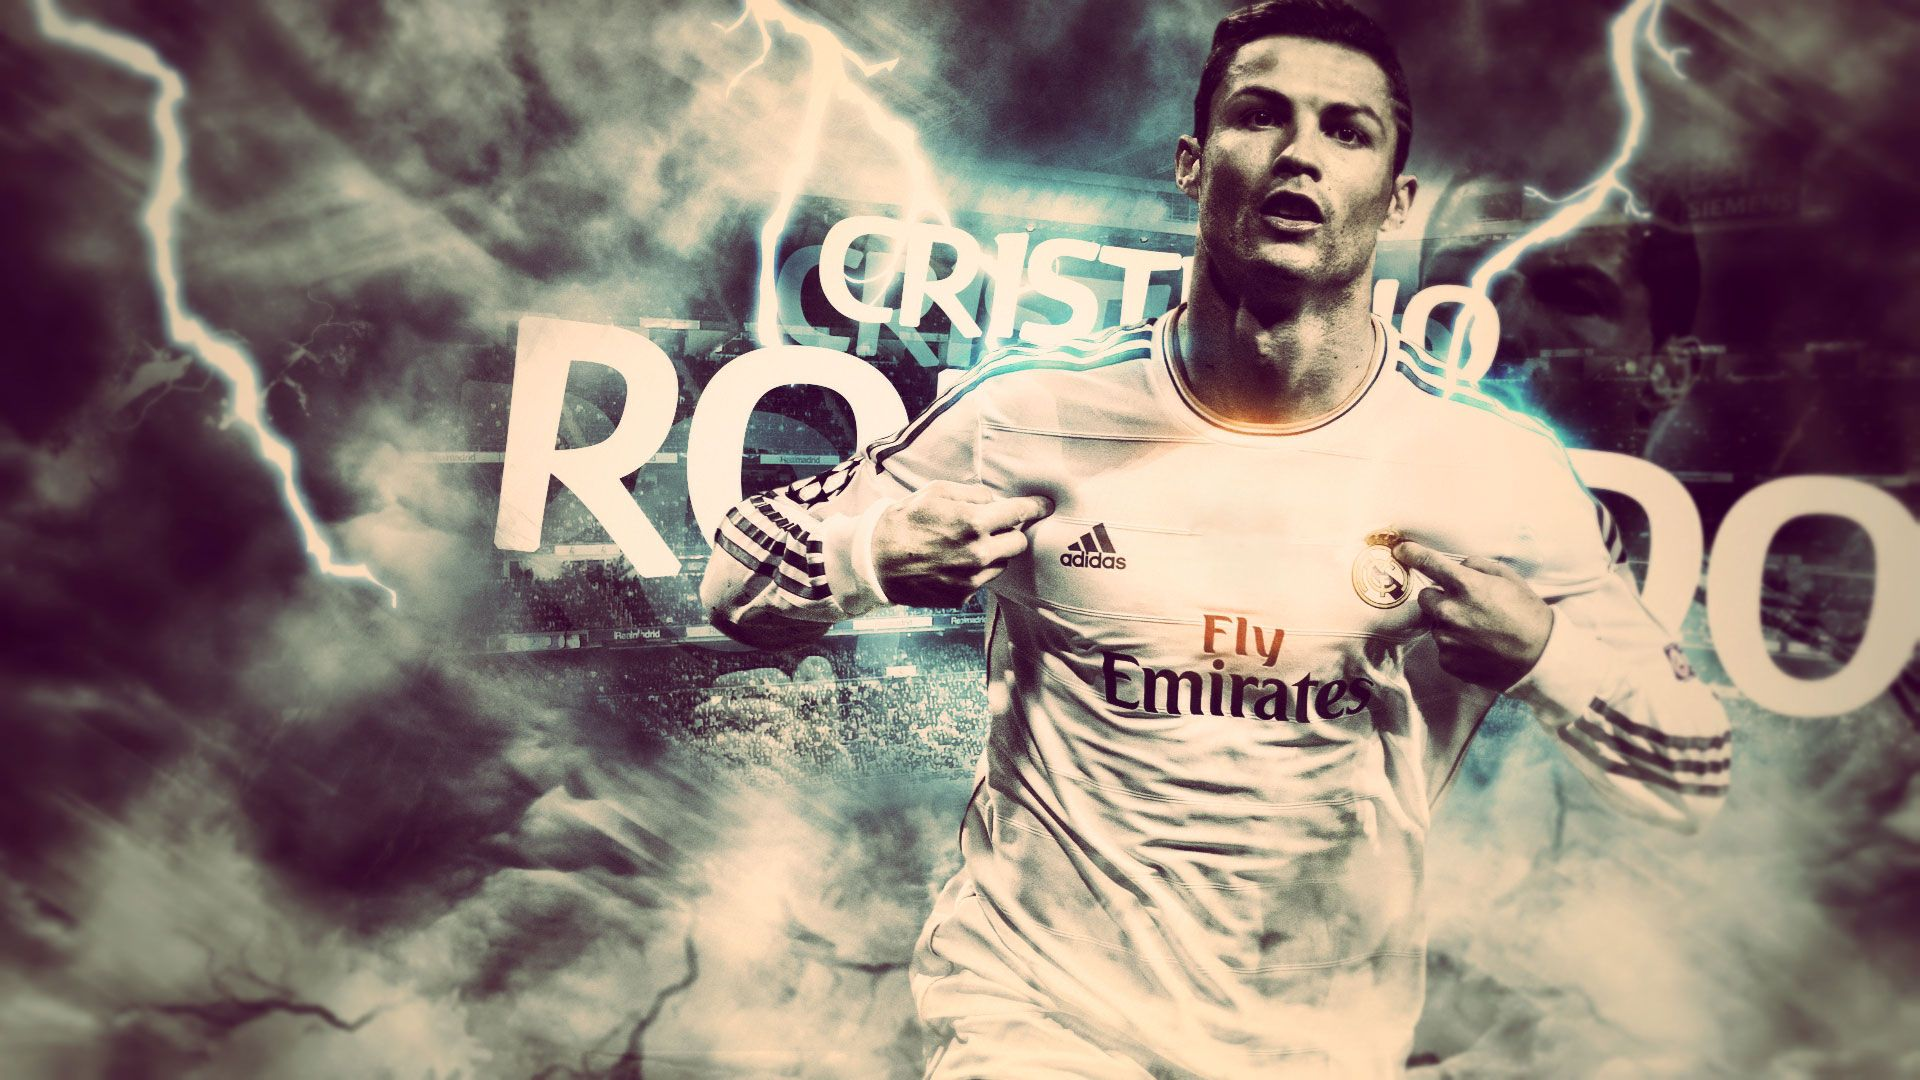 Wallpapers Cr7 2015 1920x1080